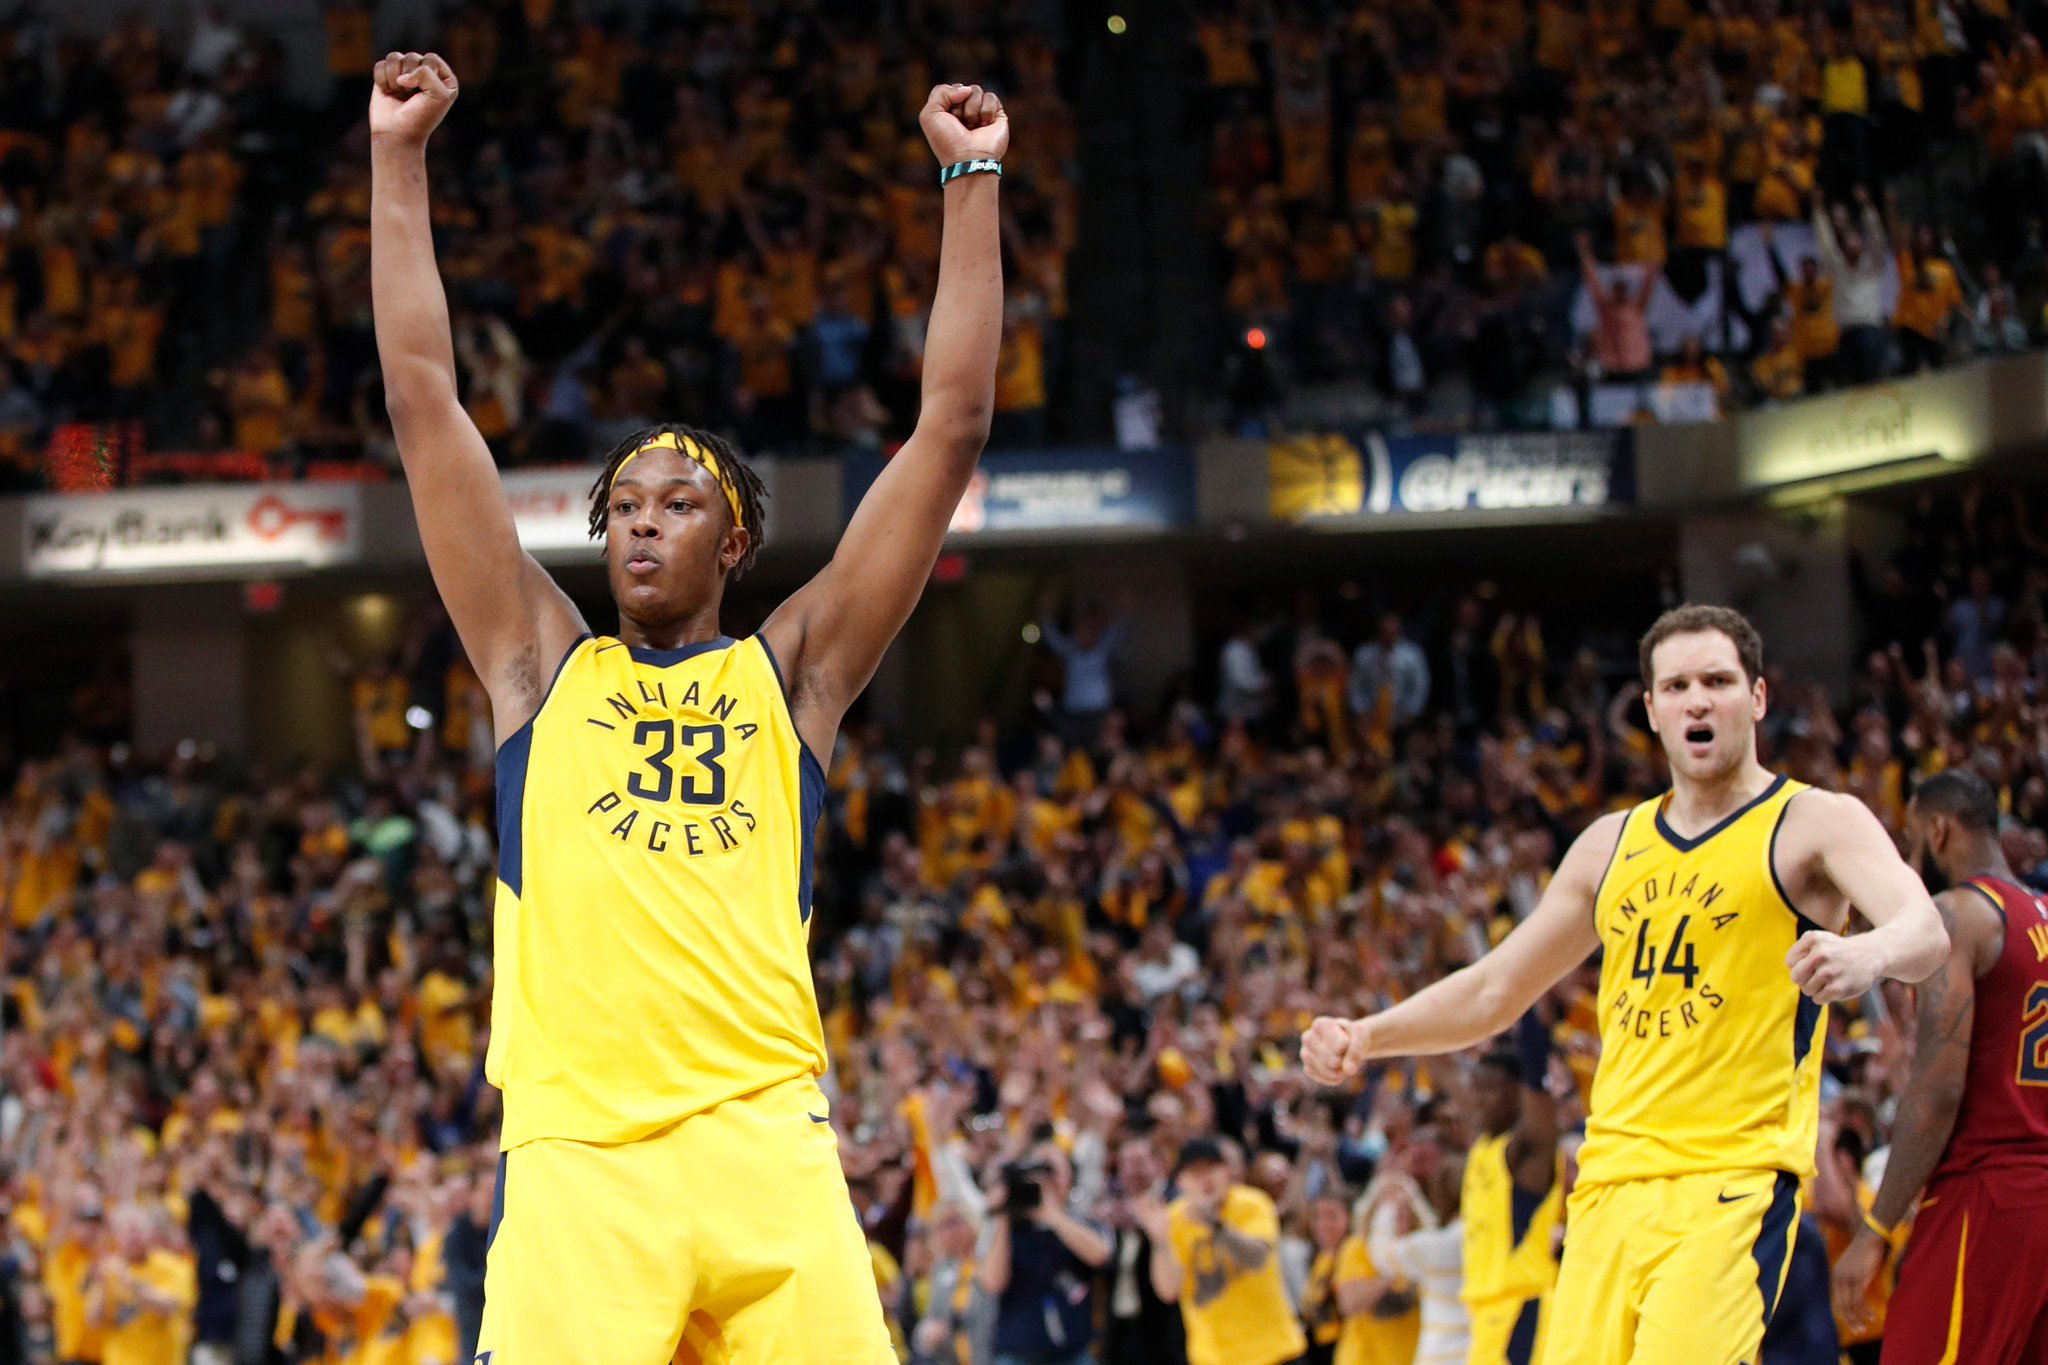 MOOD in INDY!   @Pacers comeback to defeat Cleveland 92-90 and take a 2-1 series lead. #NBAPlayoffs #Pacers https://t.co/My2yuttmWG